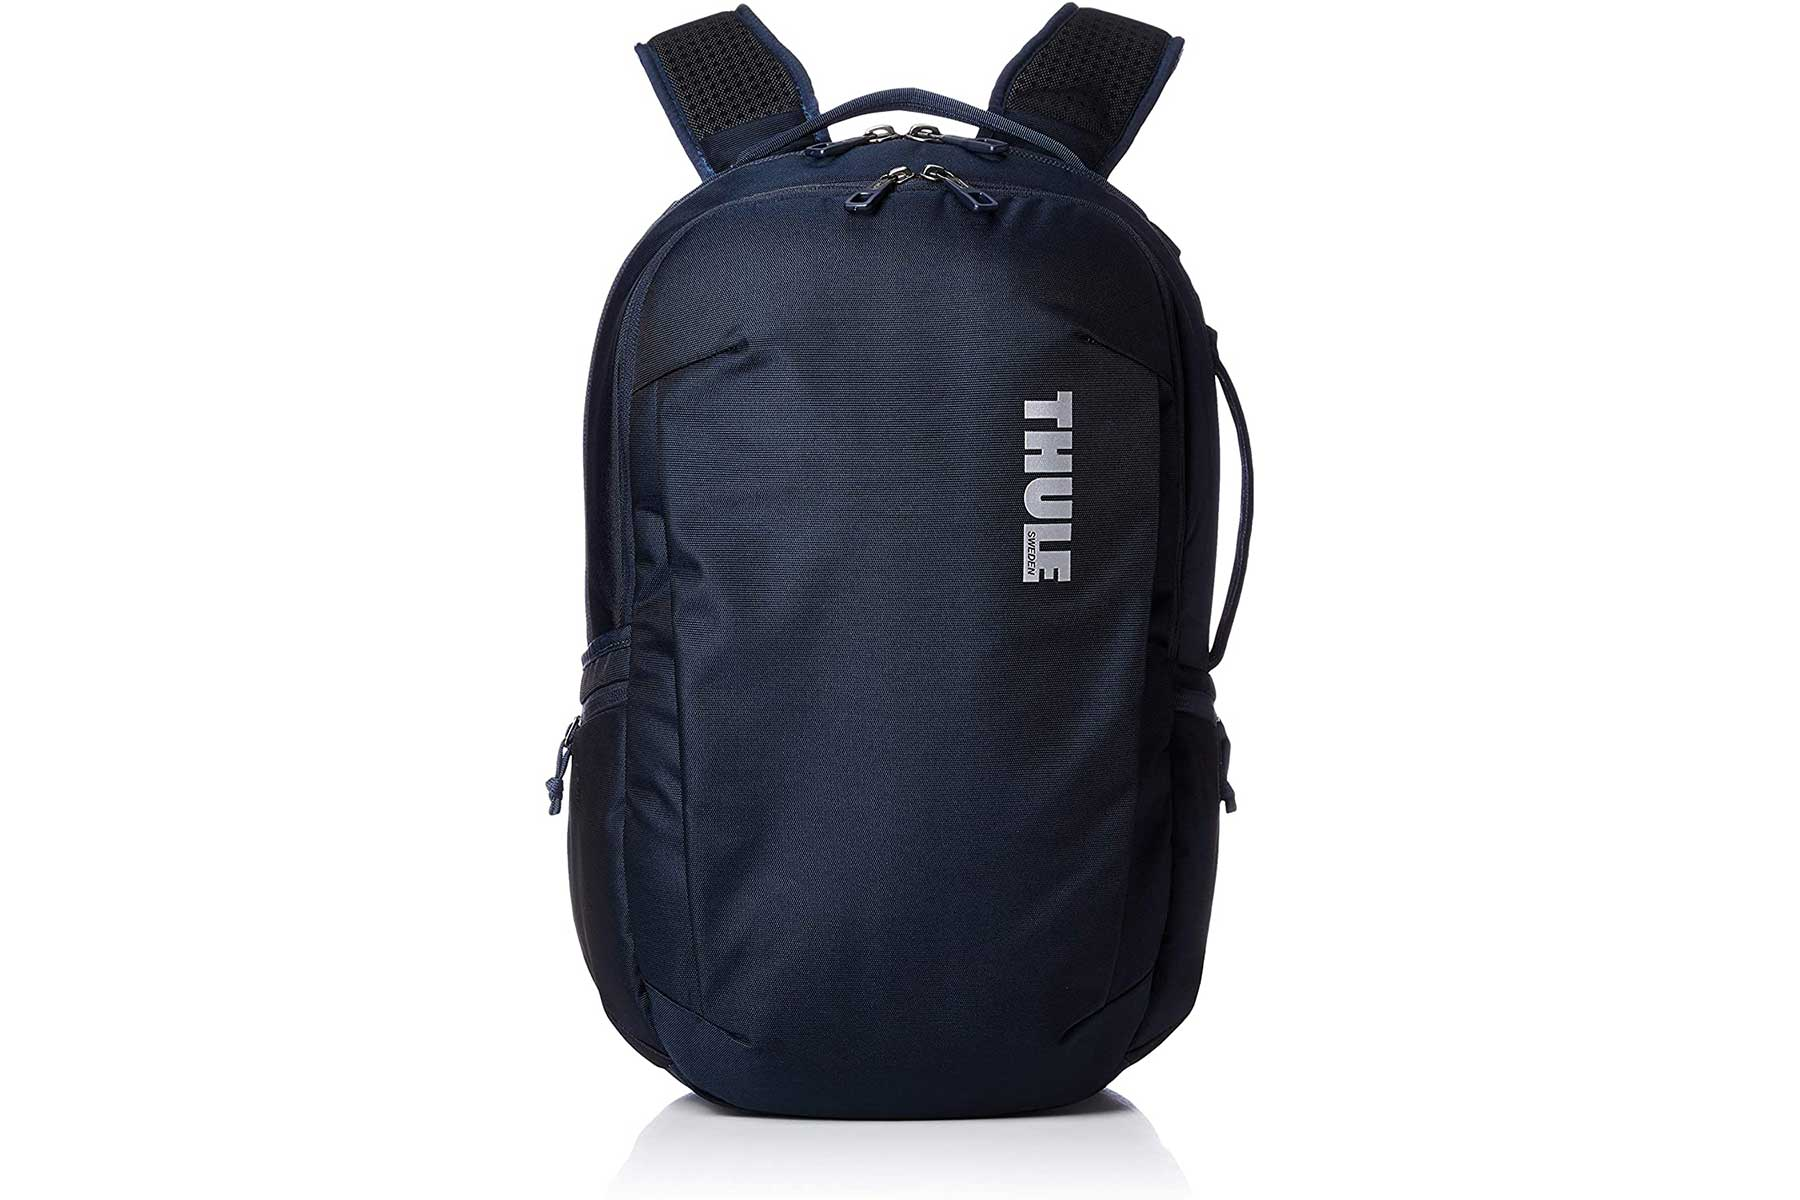 Thule Subterra laptop backpack in navy